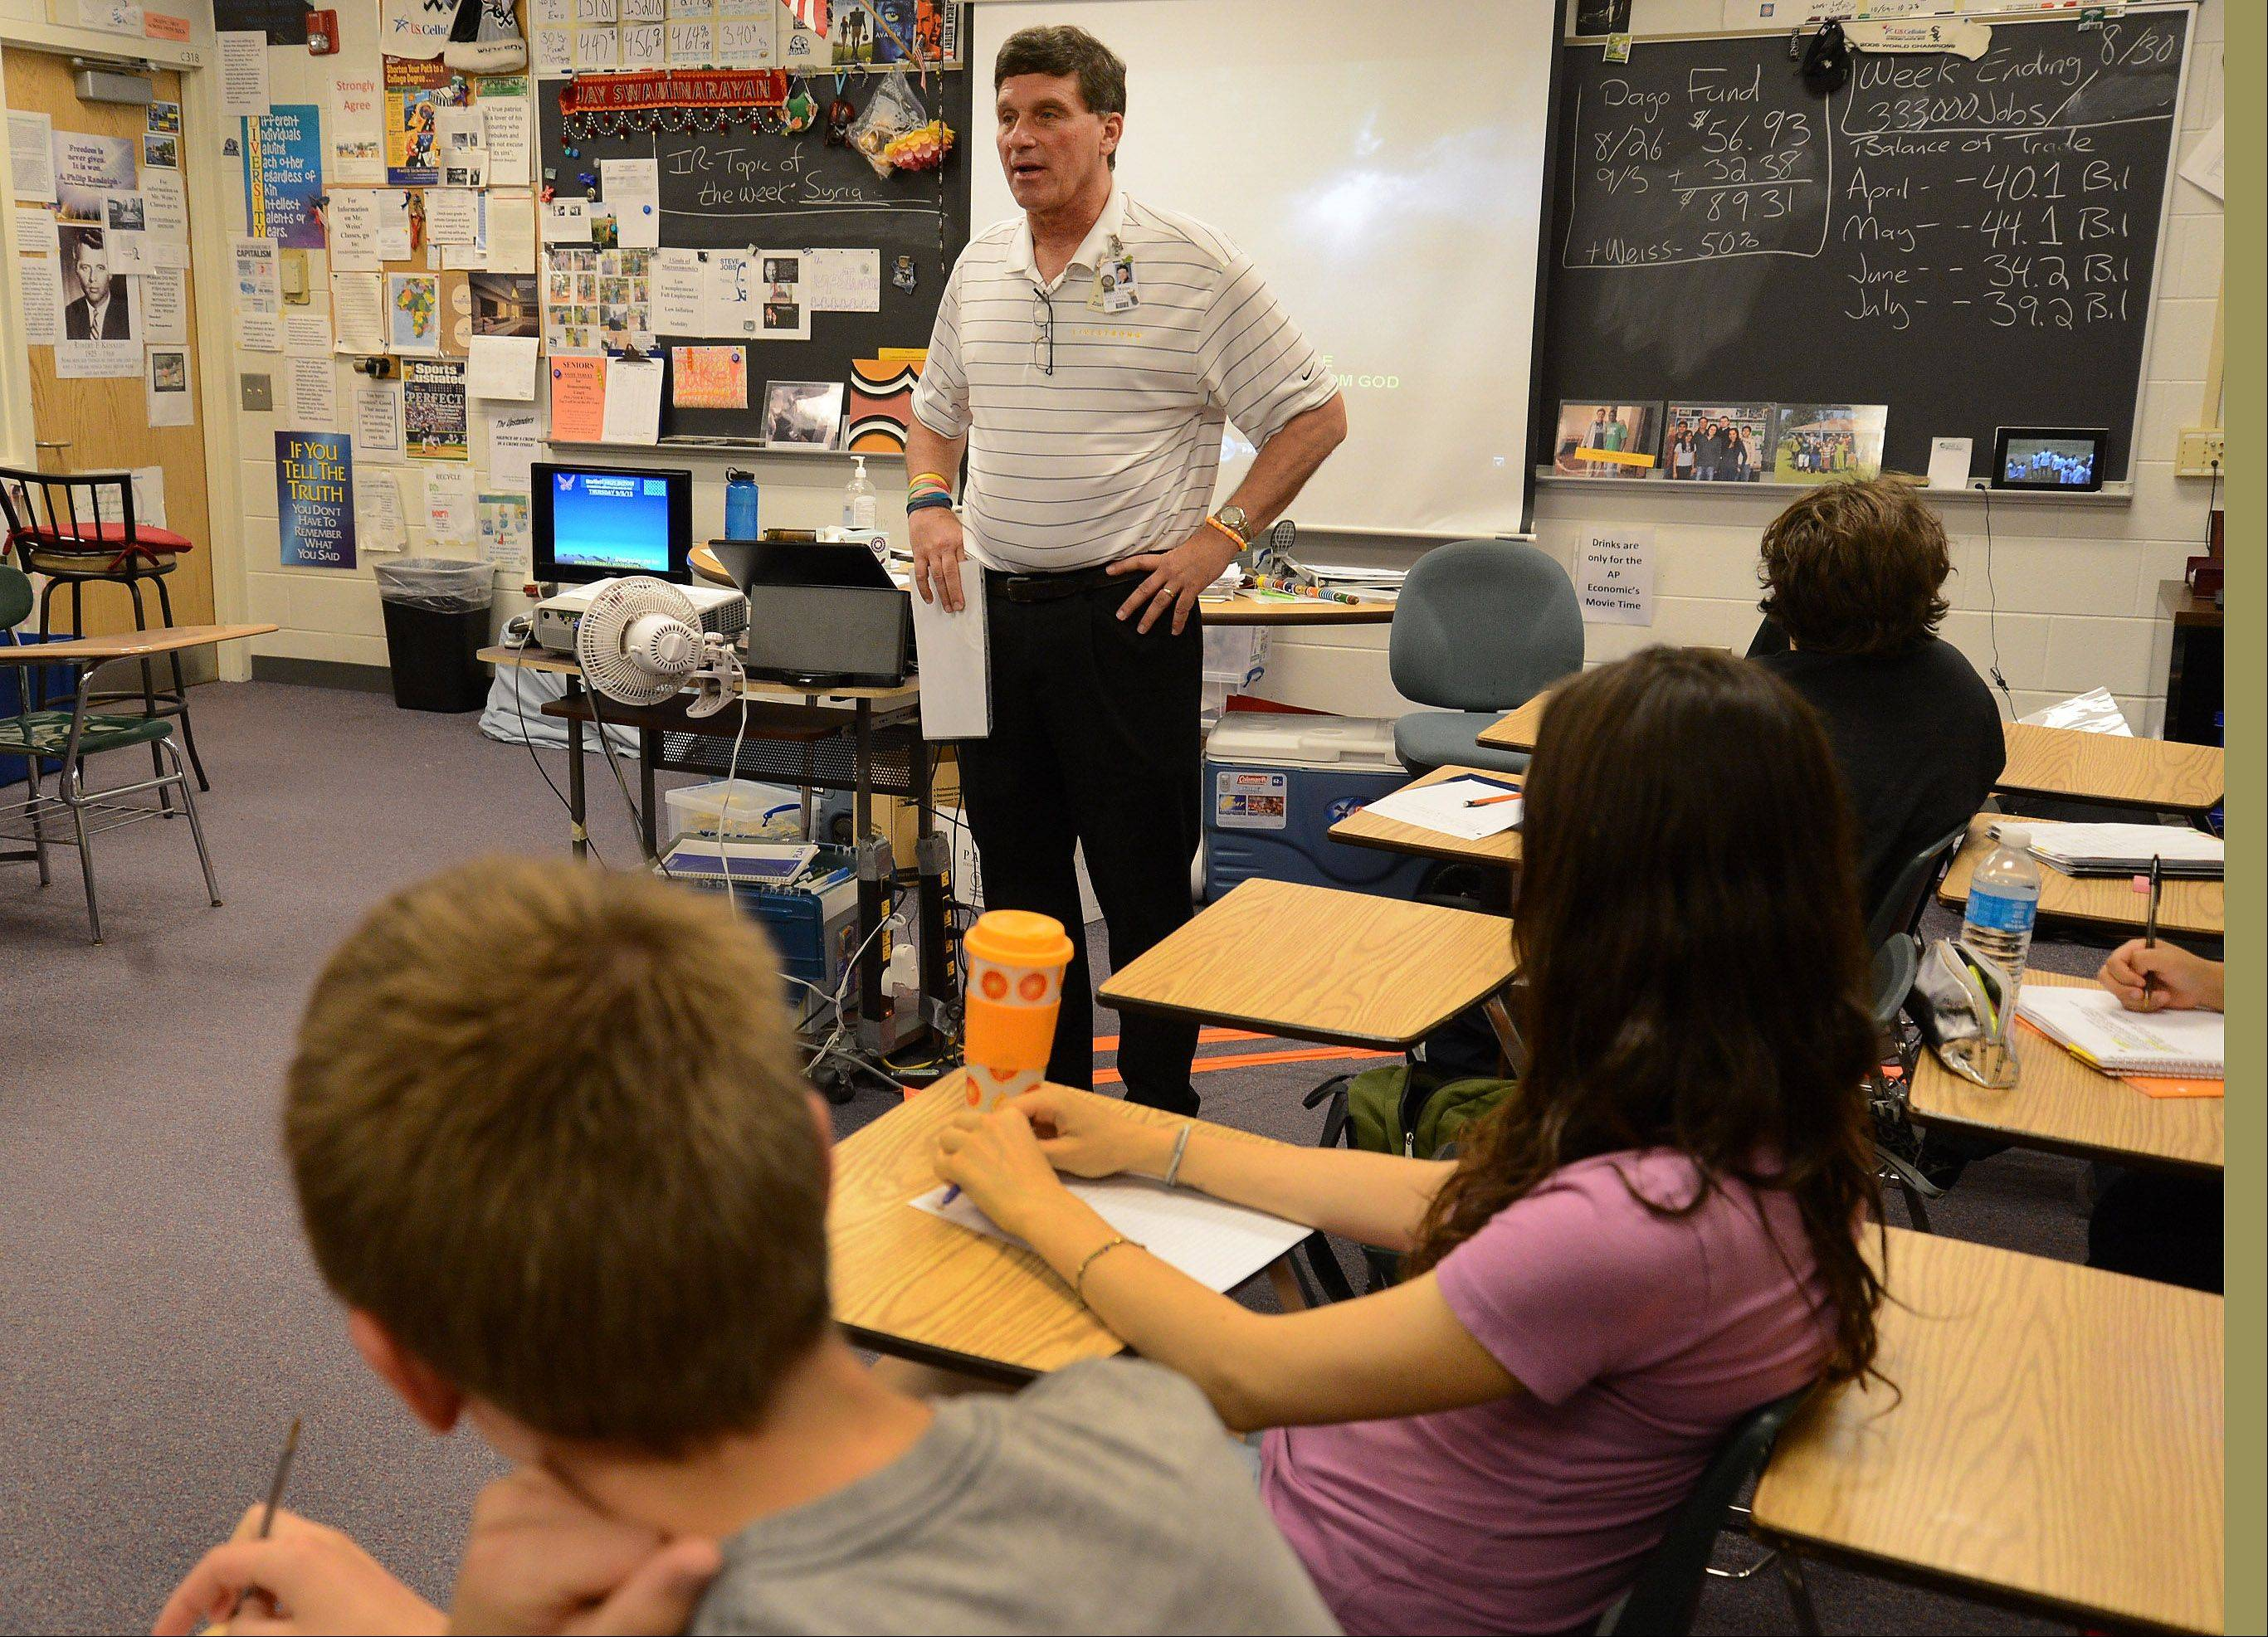 In a classroom filled with meaningful quotations from around the globe, Bartlett High School teacher Brett Weiss can bring firsthand knowledge to his international relations class. Weiss started a charity that funds high school educations for children in a rural African village stricken with AIDS and poverty.